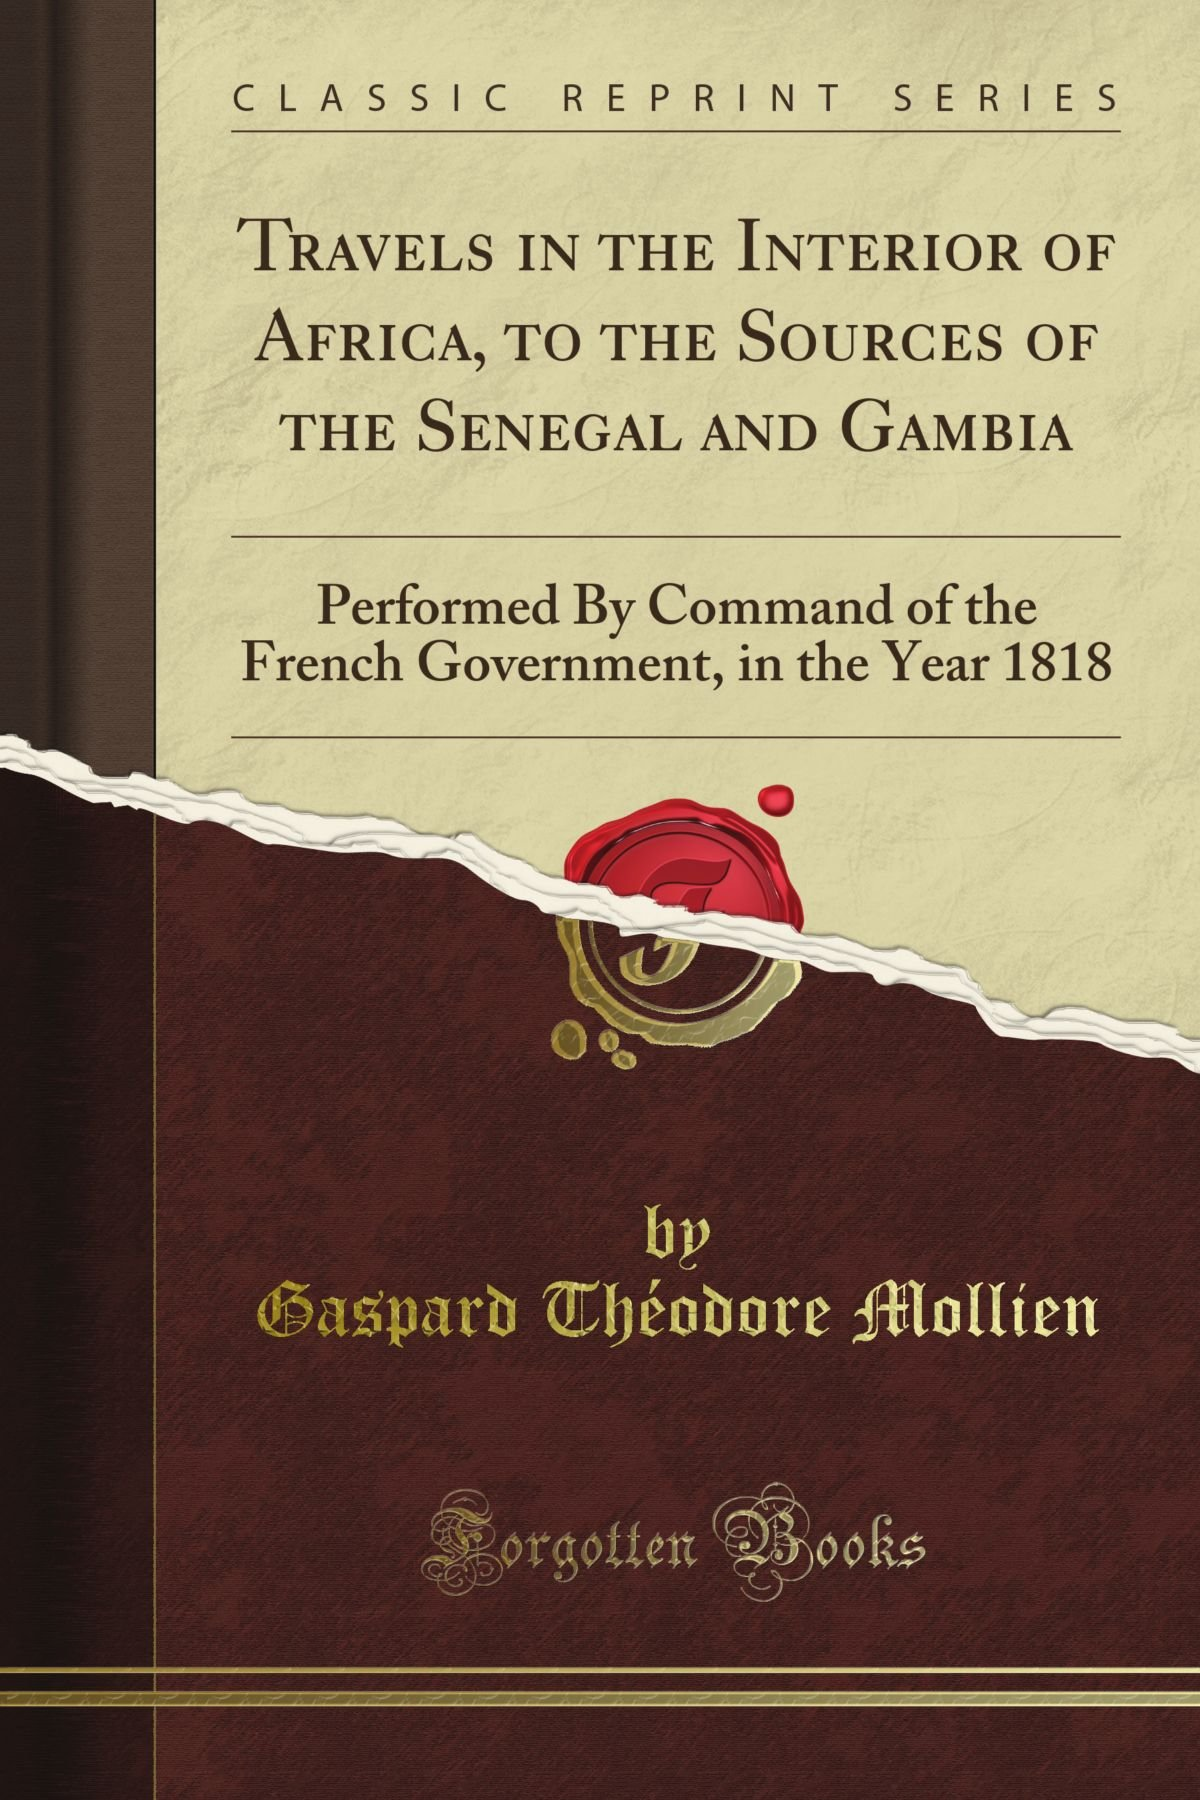 Travels in the Interior of Africa, to the Sources of the Senegal and Gambia: Performed By Command of the French Government, in the Year 1818 (Classic Reprint)